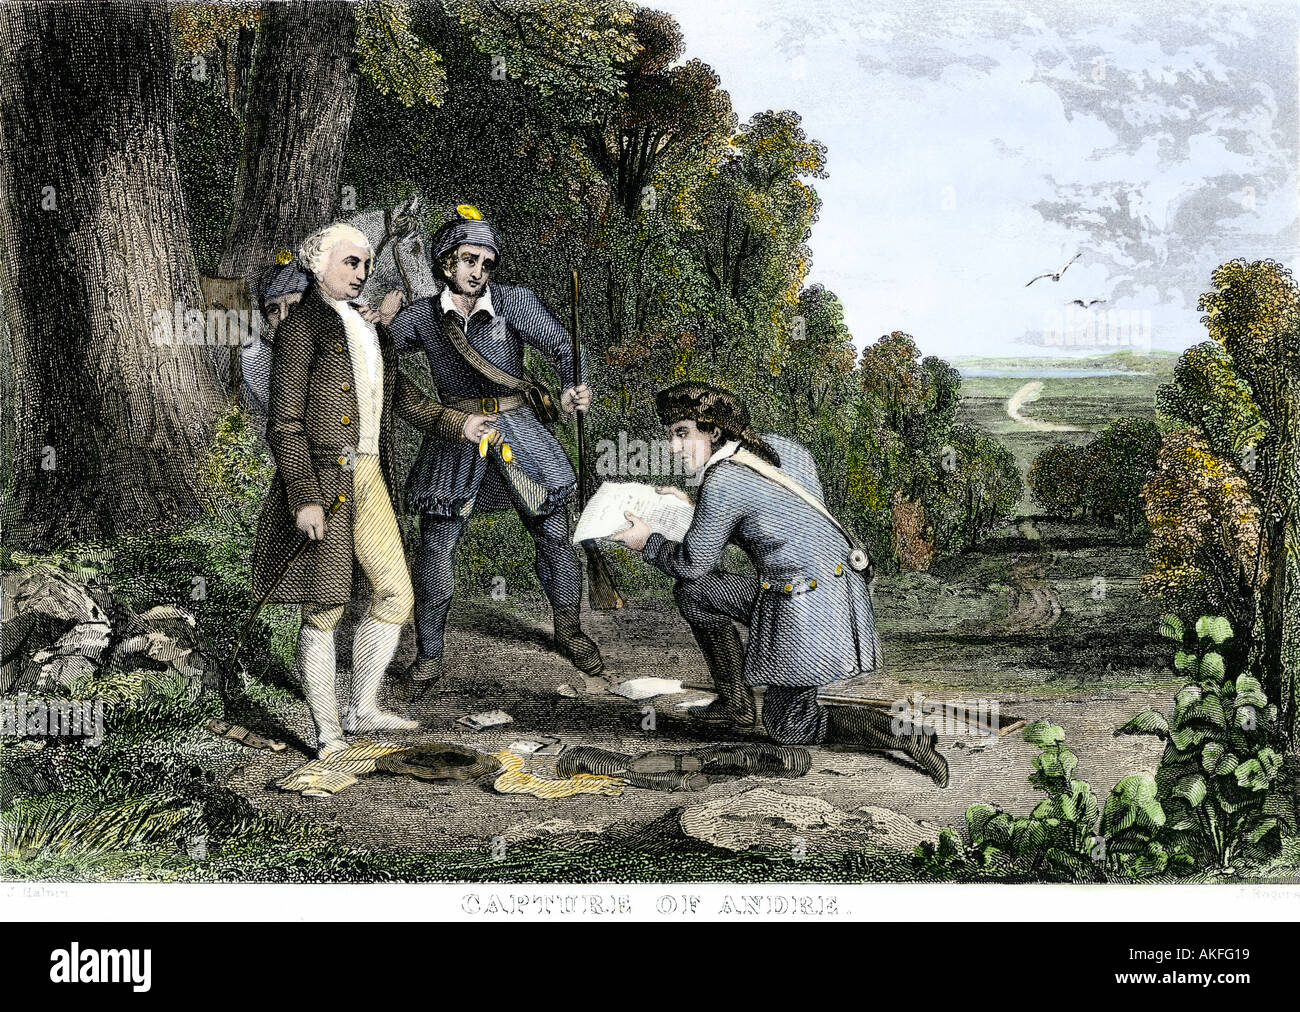 Capture of British spy John Andre and discovery of Benedict Arnold treason plot 1780. Hand-colored engraving Stock Photo